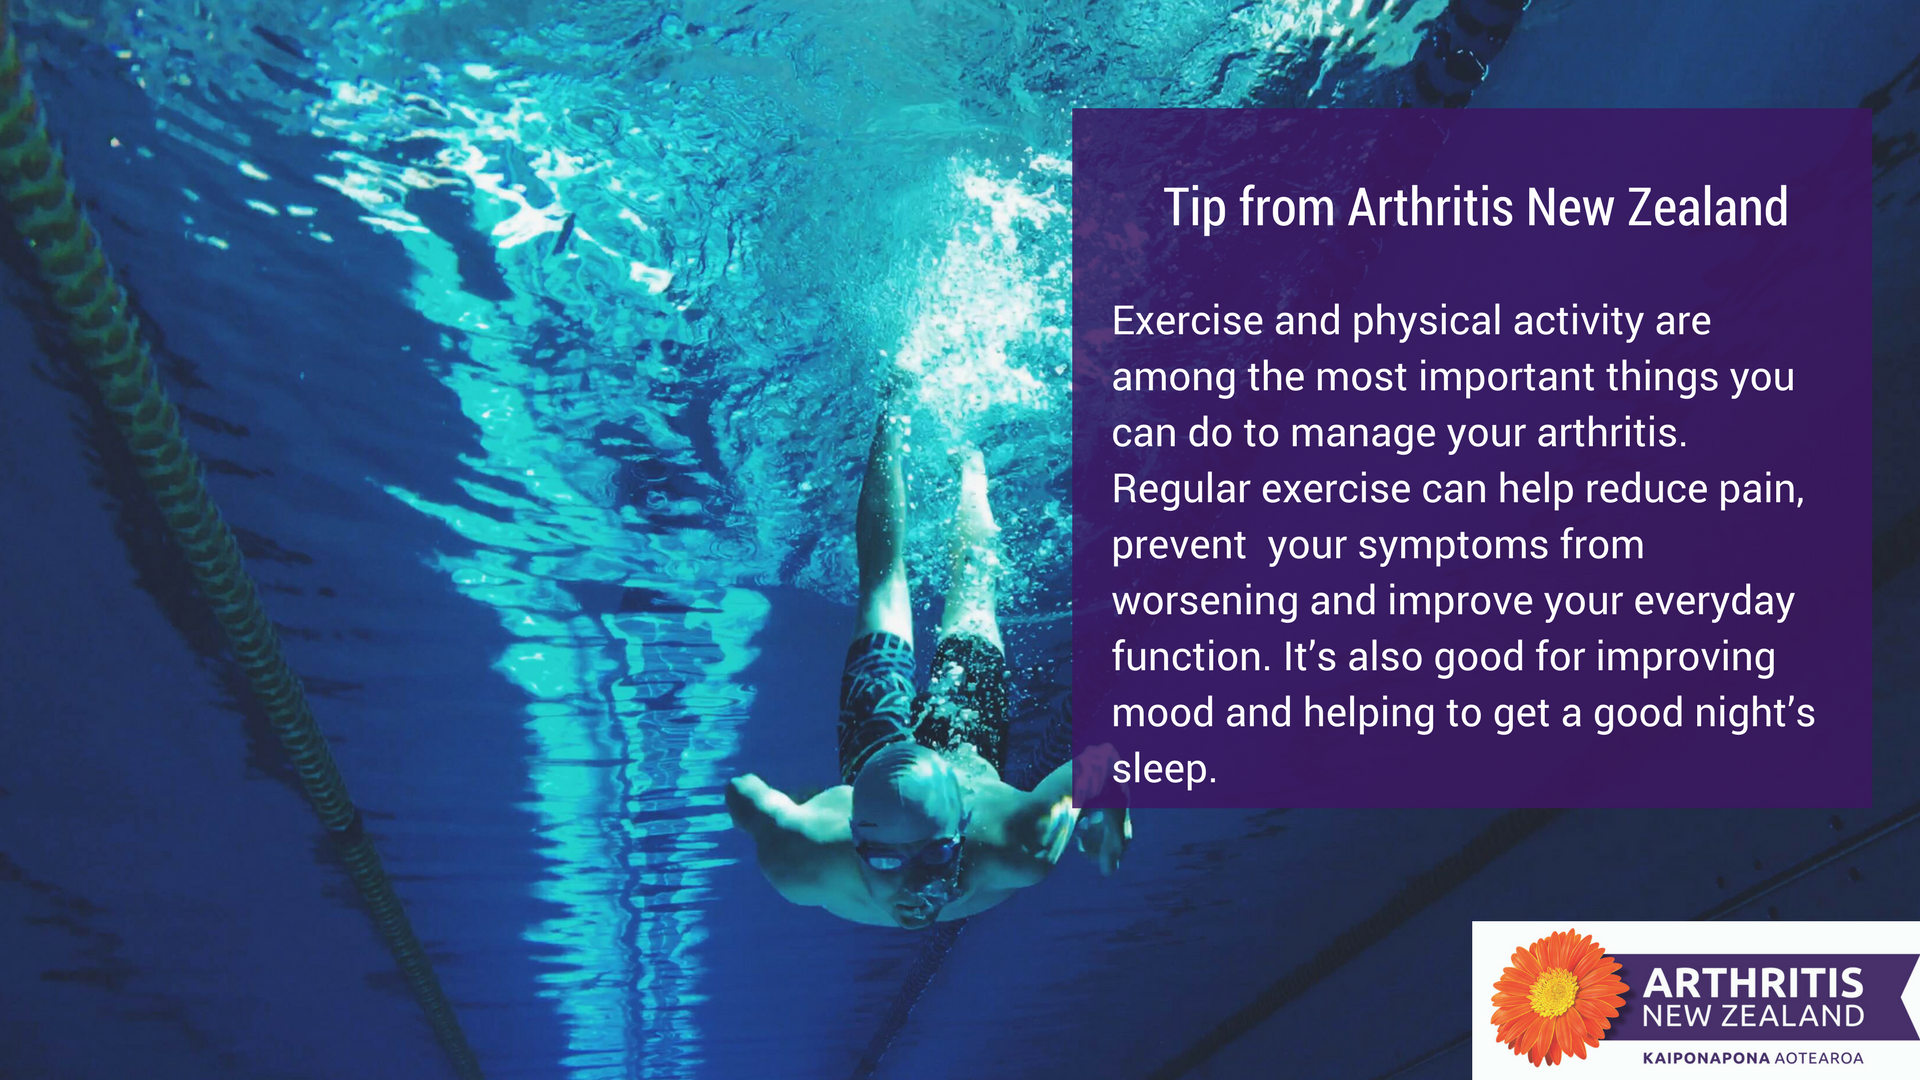 2 - Exercise tips from the Arthritis New Zealand community